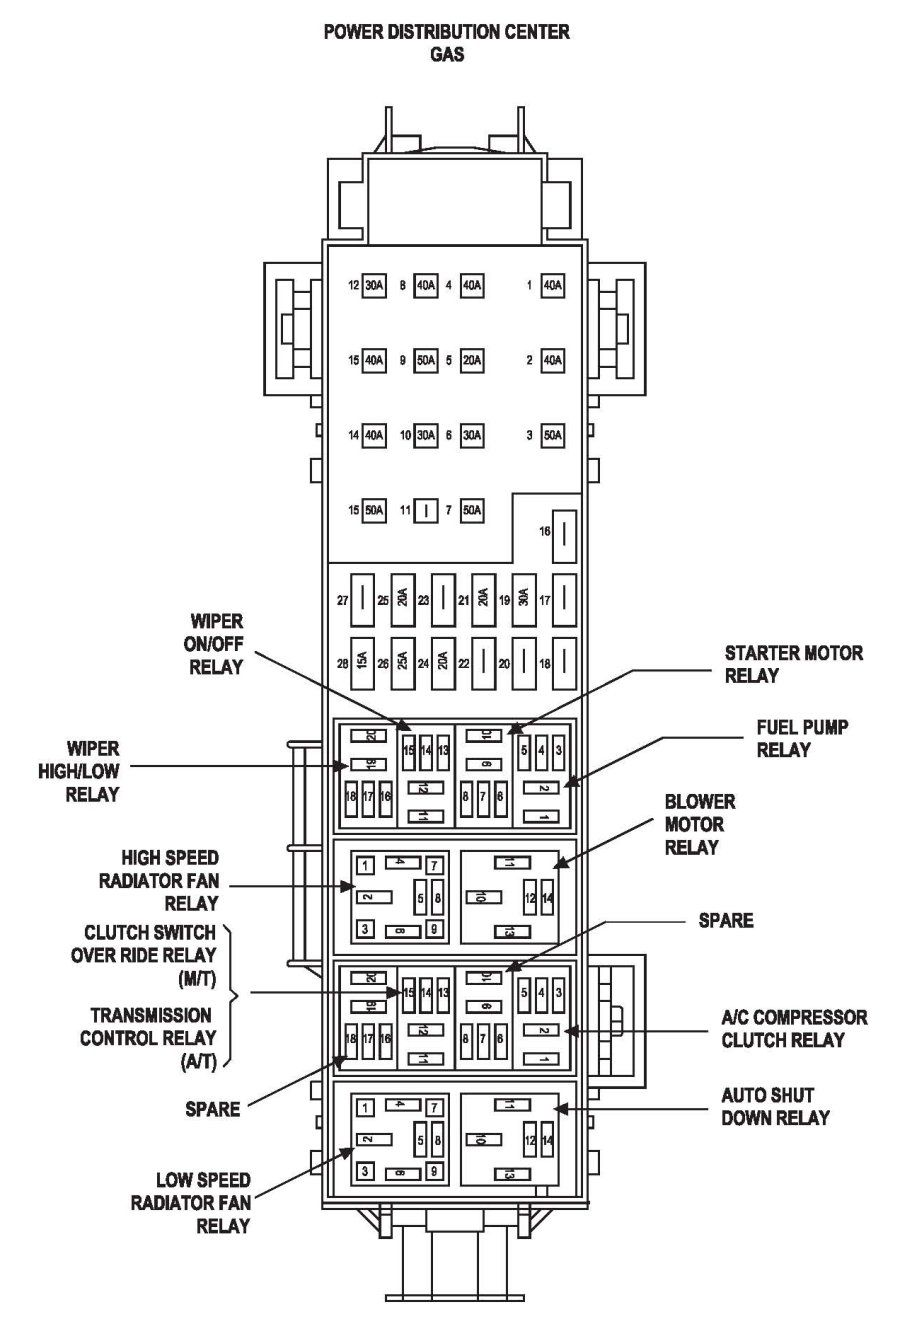 jeep liberty fuse box diagram image details jeep liberty rh pinterest com 06 jeep liberty fuse box diagram 2006 jeep liberty fuse box layout